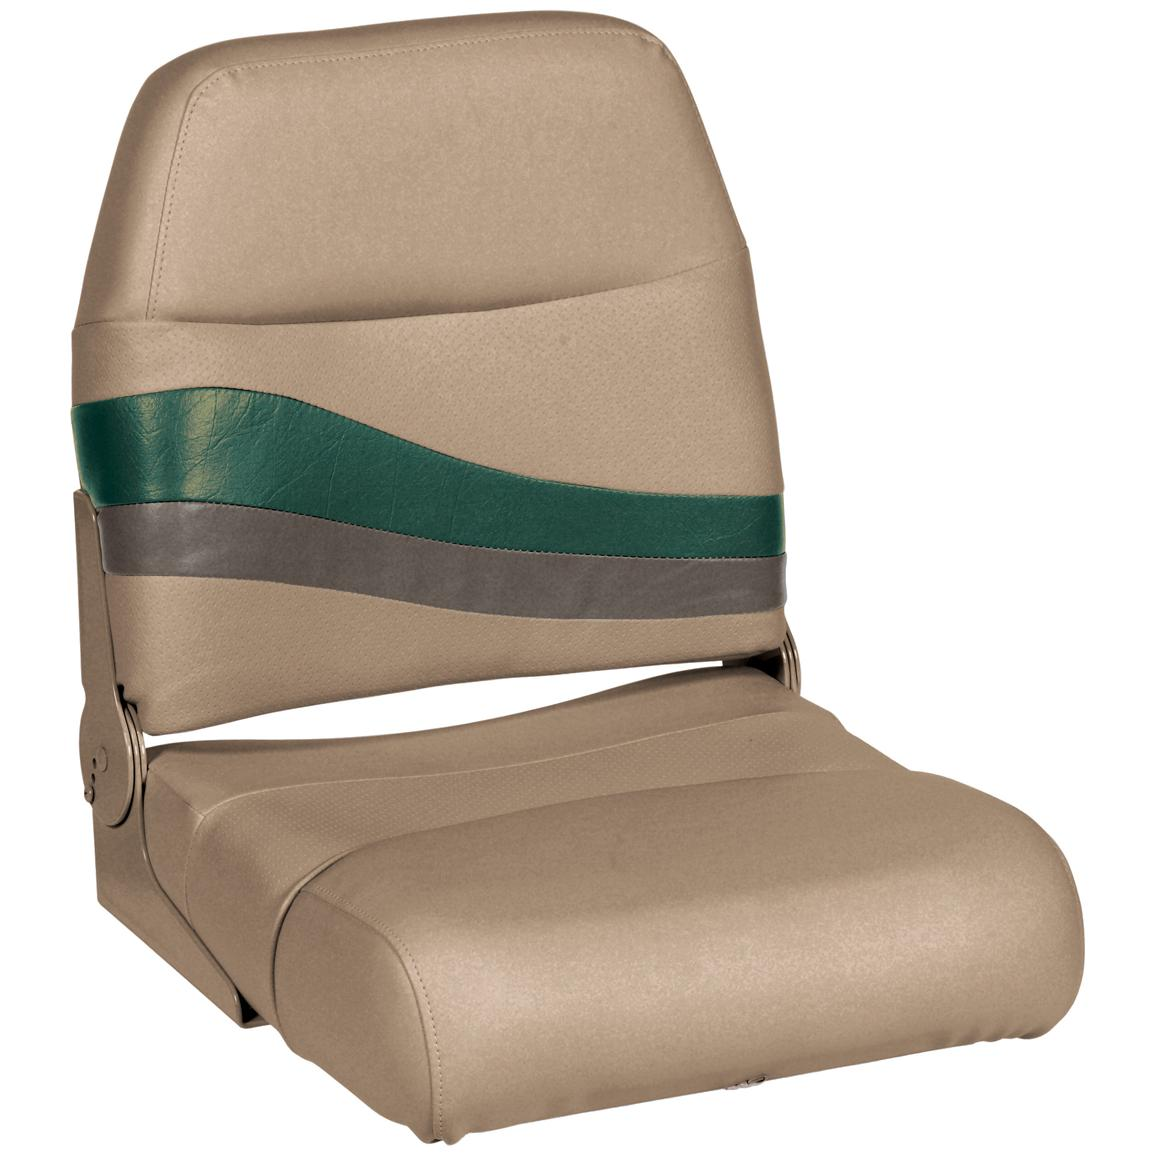 Wise® Premier 1100 Series Pontoon Fishing Seat, Color F